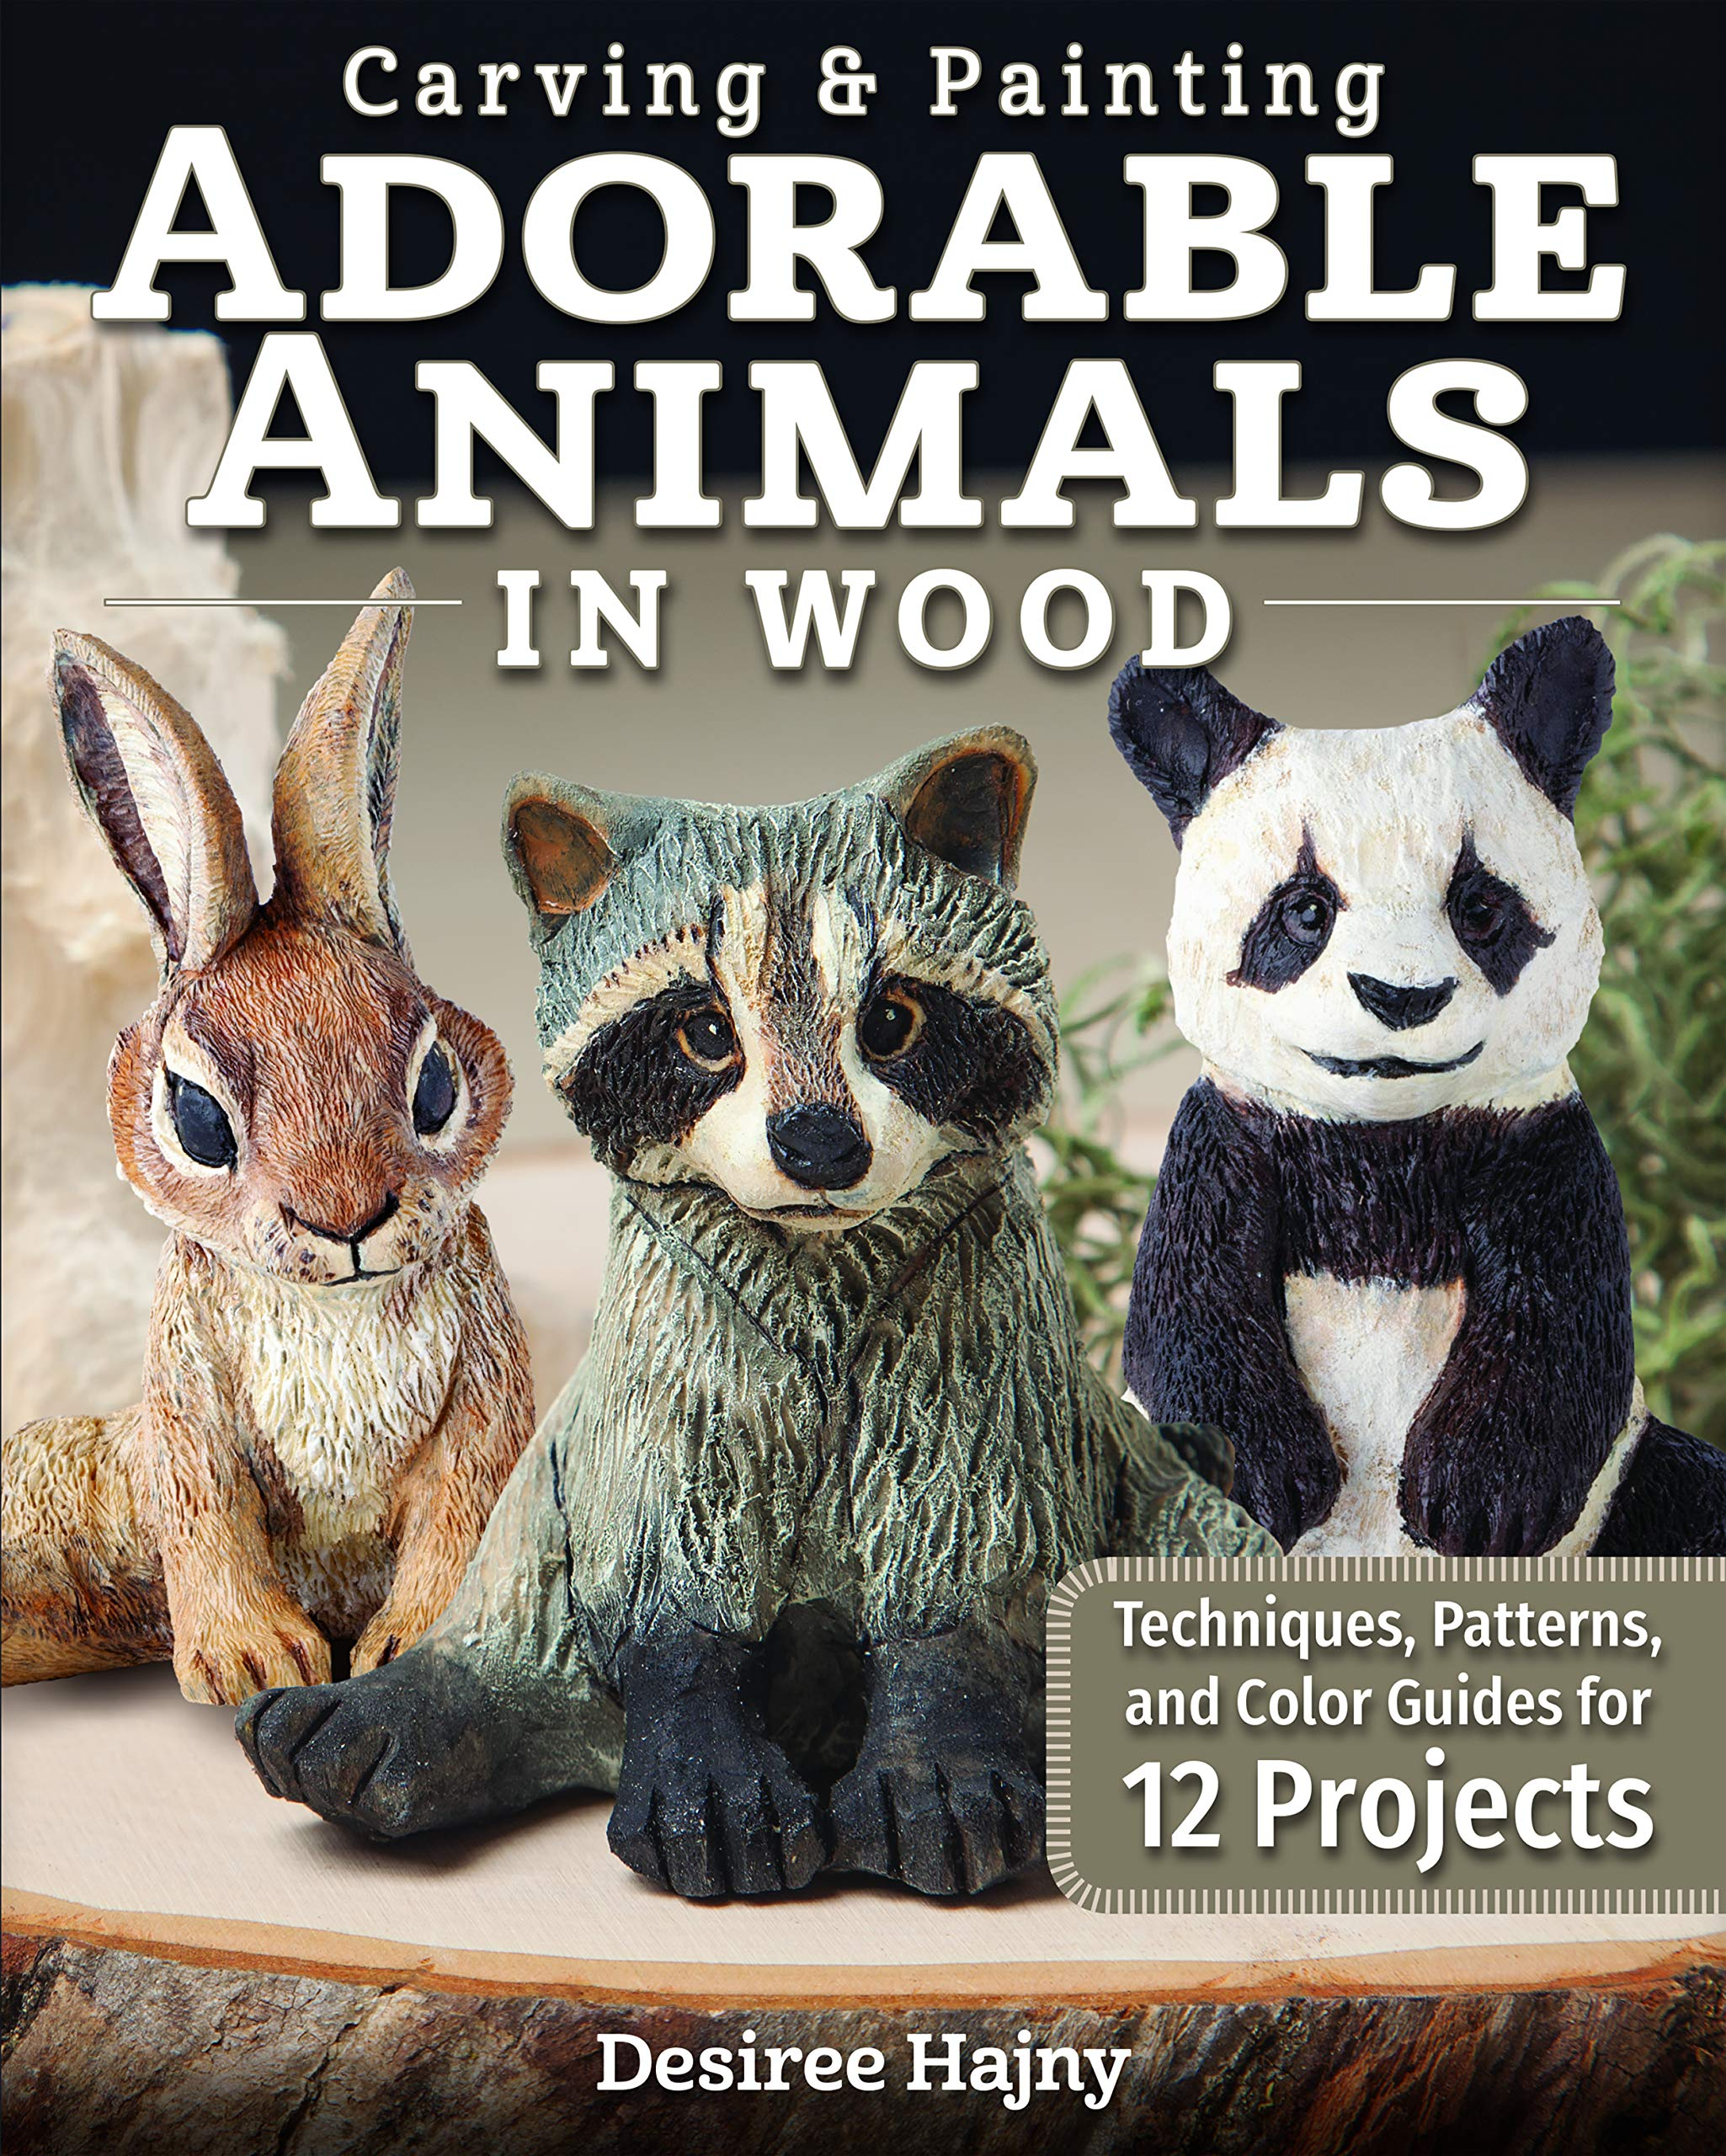 Carving Painting Adorable Animals In Wood Techniques Patterns And Color Guides For 12 Projects Fox Chapel Publishing Templates Hair Tracts Painting Tips For Shelf Sitters Wolf Fox More Amazon Co Uk